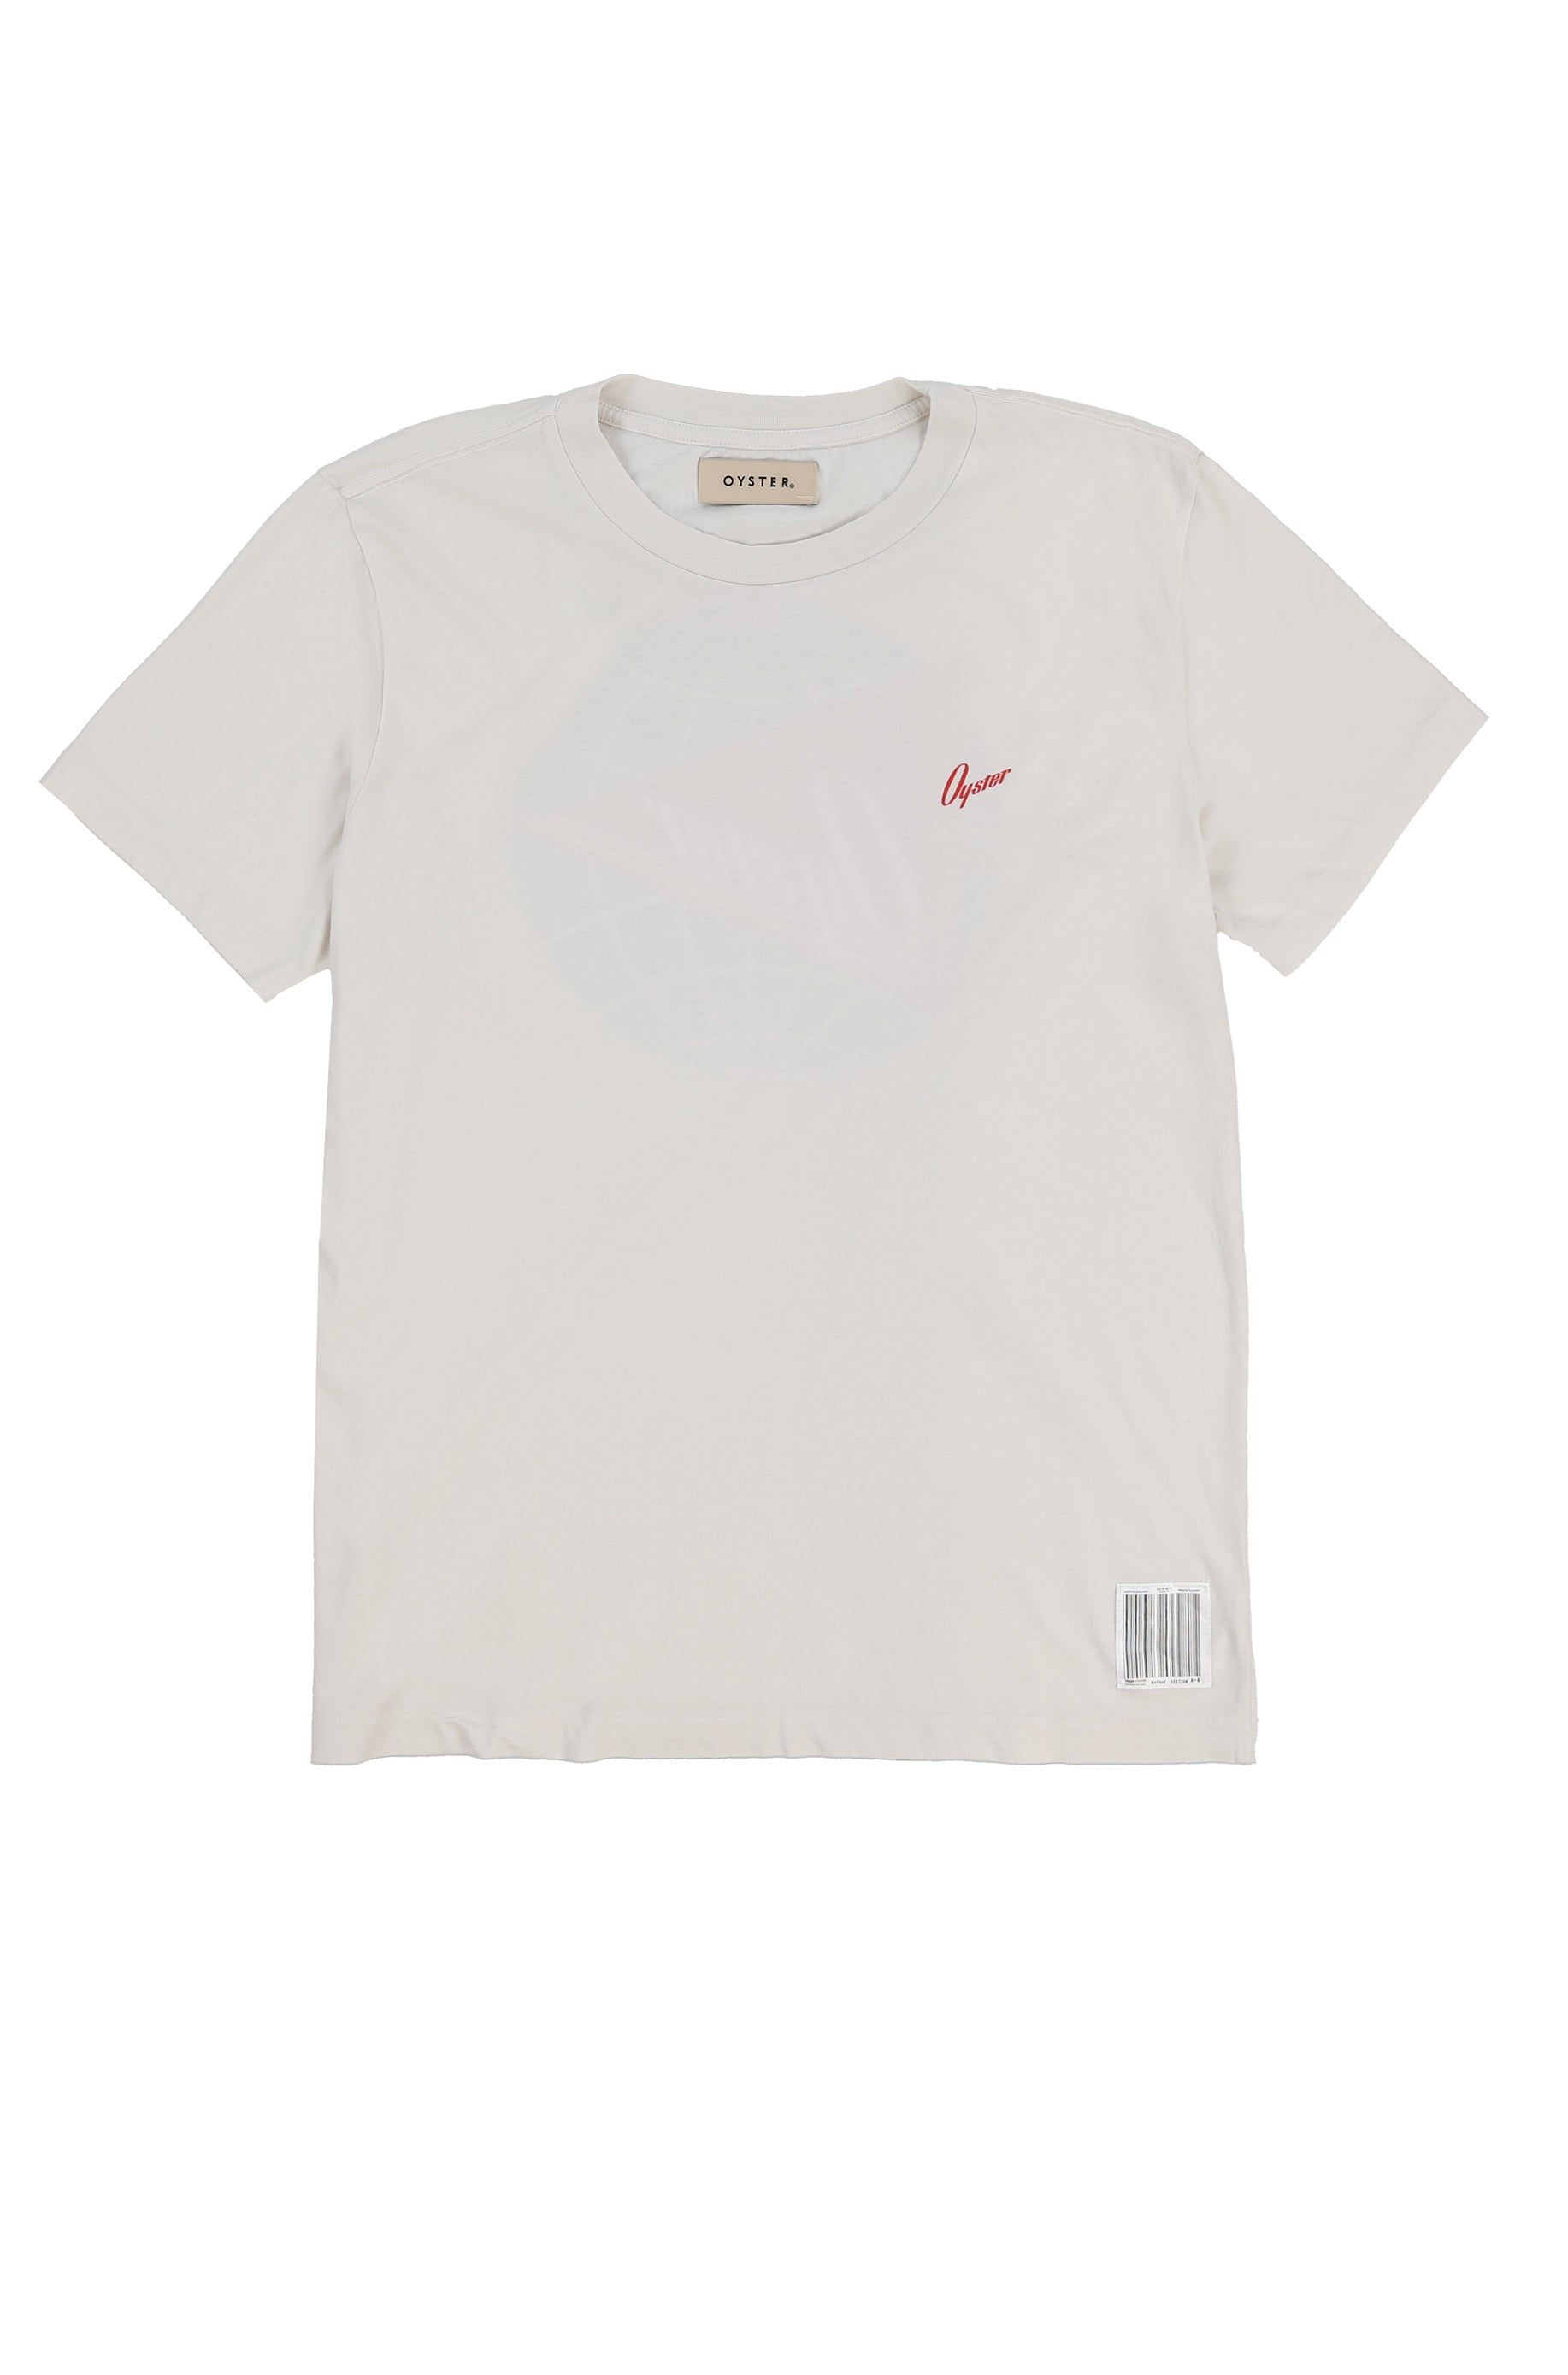 OYSTER PENNANT TEE (VINTAGE WHITE)